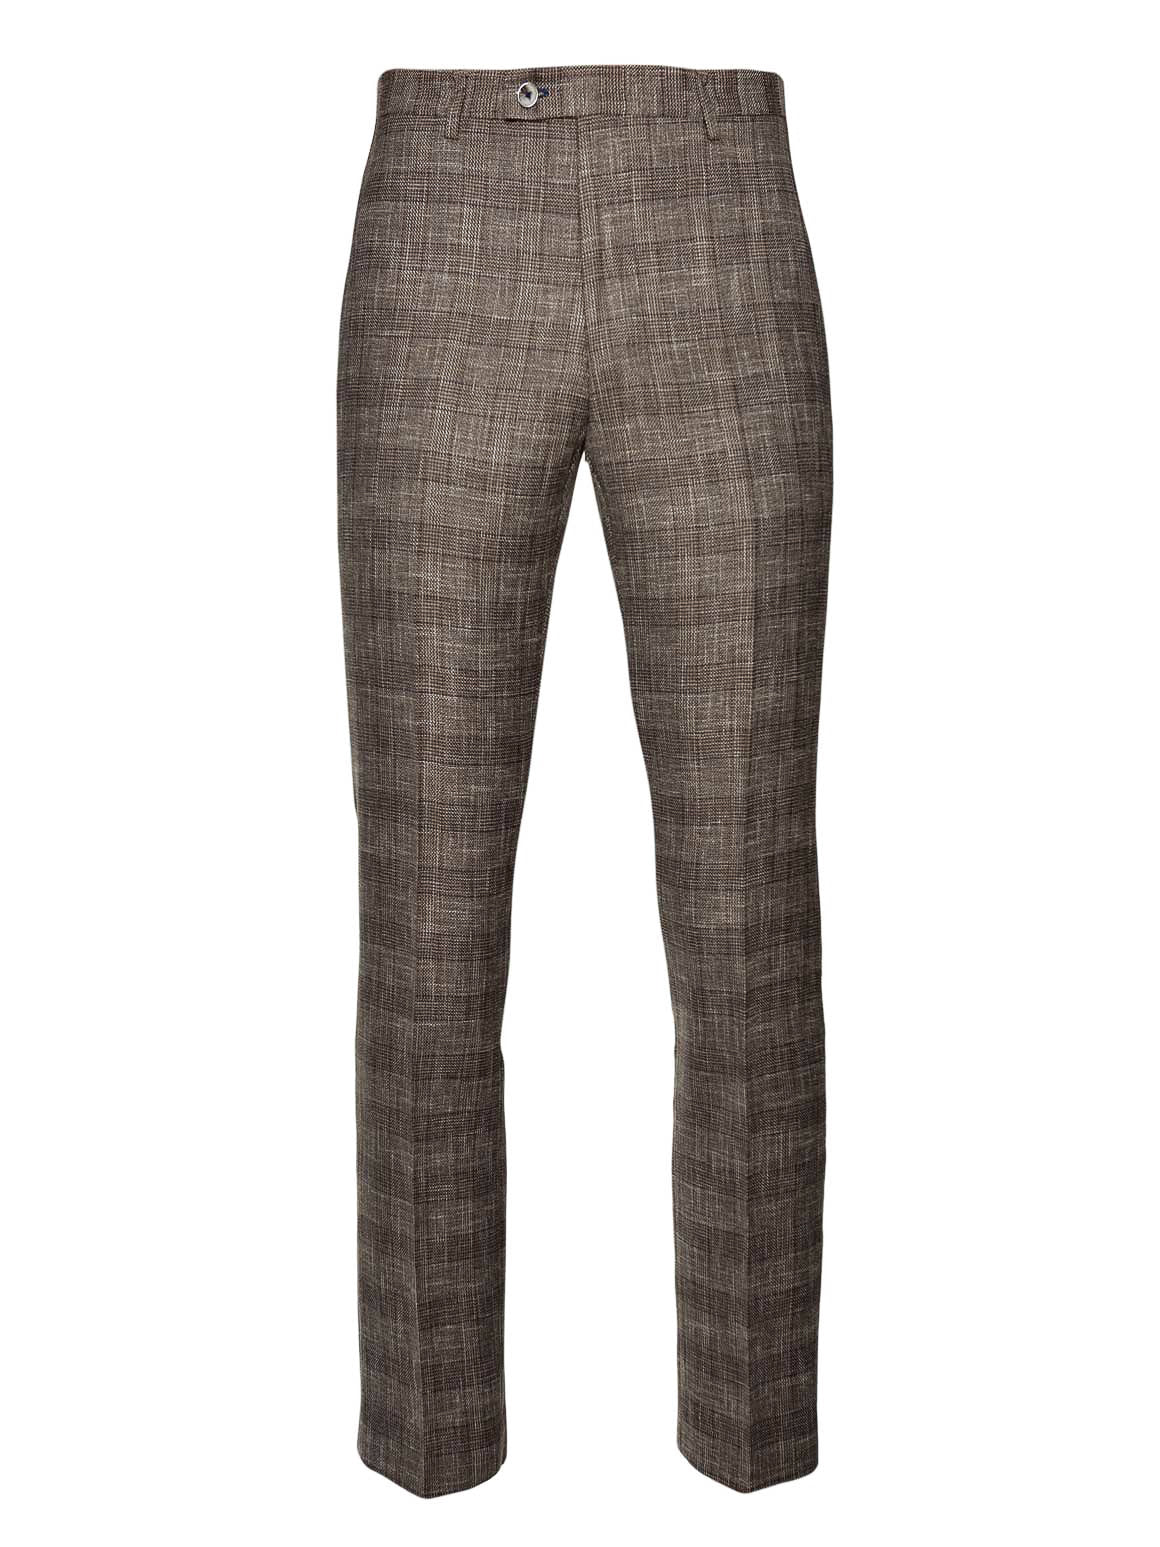 Ltd Edition Downing Pants - Slim - Tan Blue Plaid